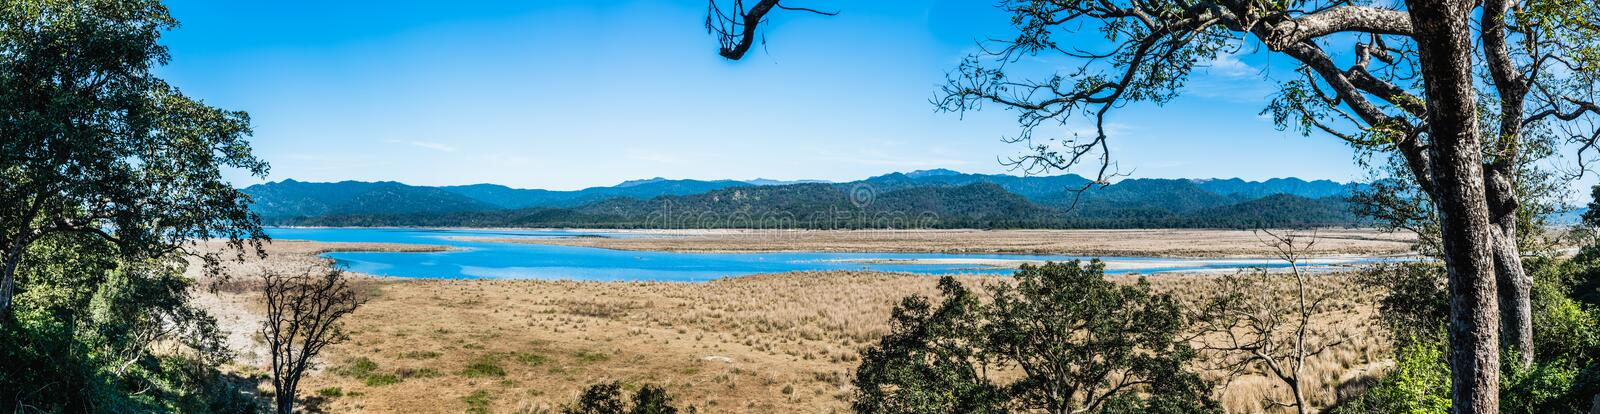 Panoramic view from Dhikhala forest rest house at Jim Corbett National Park. Panoramic view of River Ramganga flowing over Dhikhala, at Jim Corbett National Park royalty free stock image